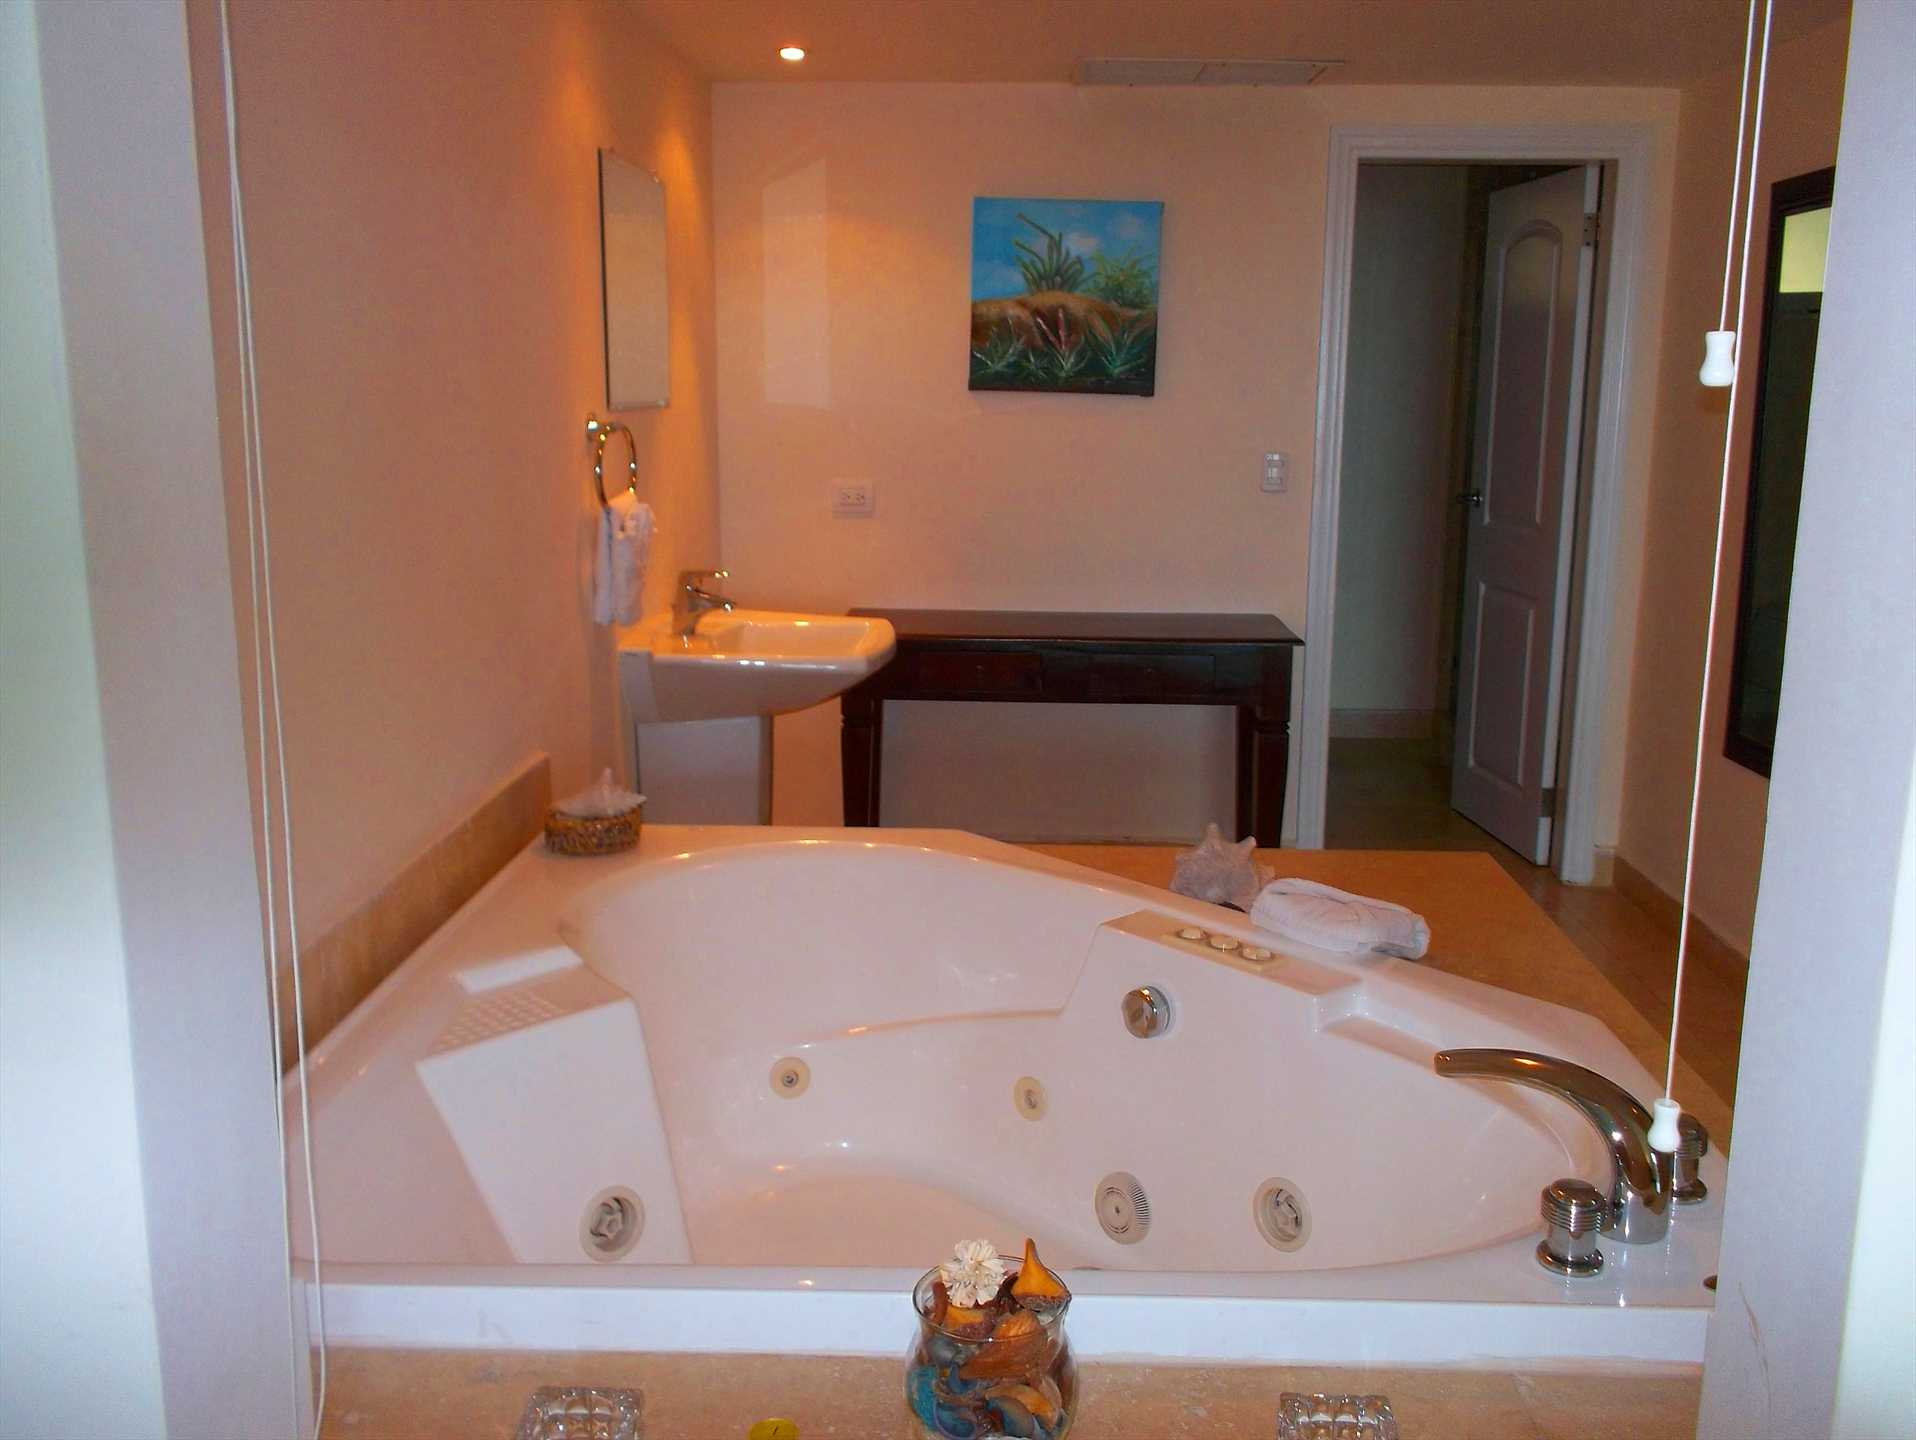 In-room private Jacuzzi and fully equipped bathroom and closet.